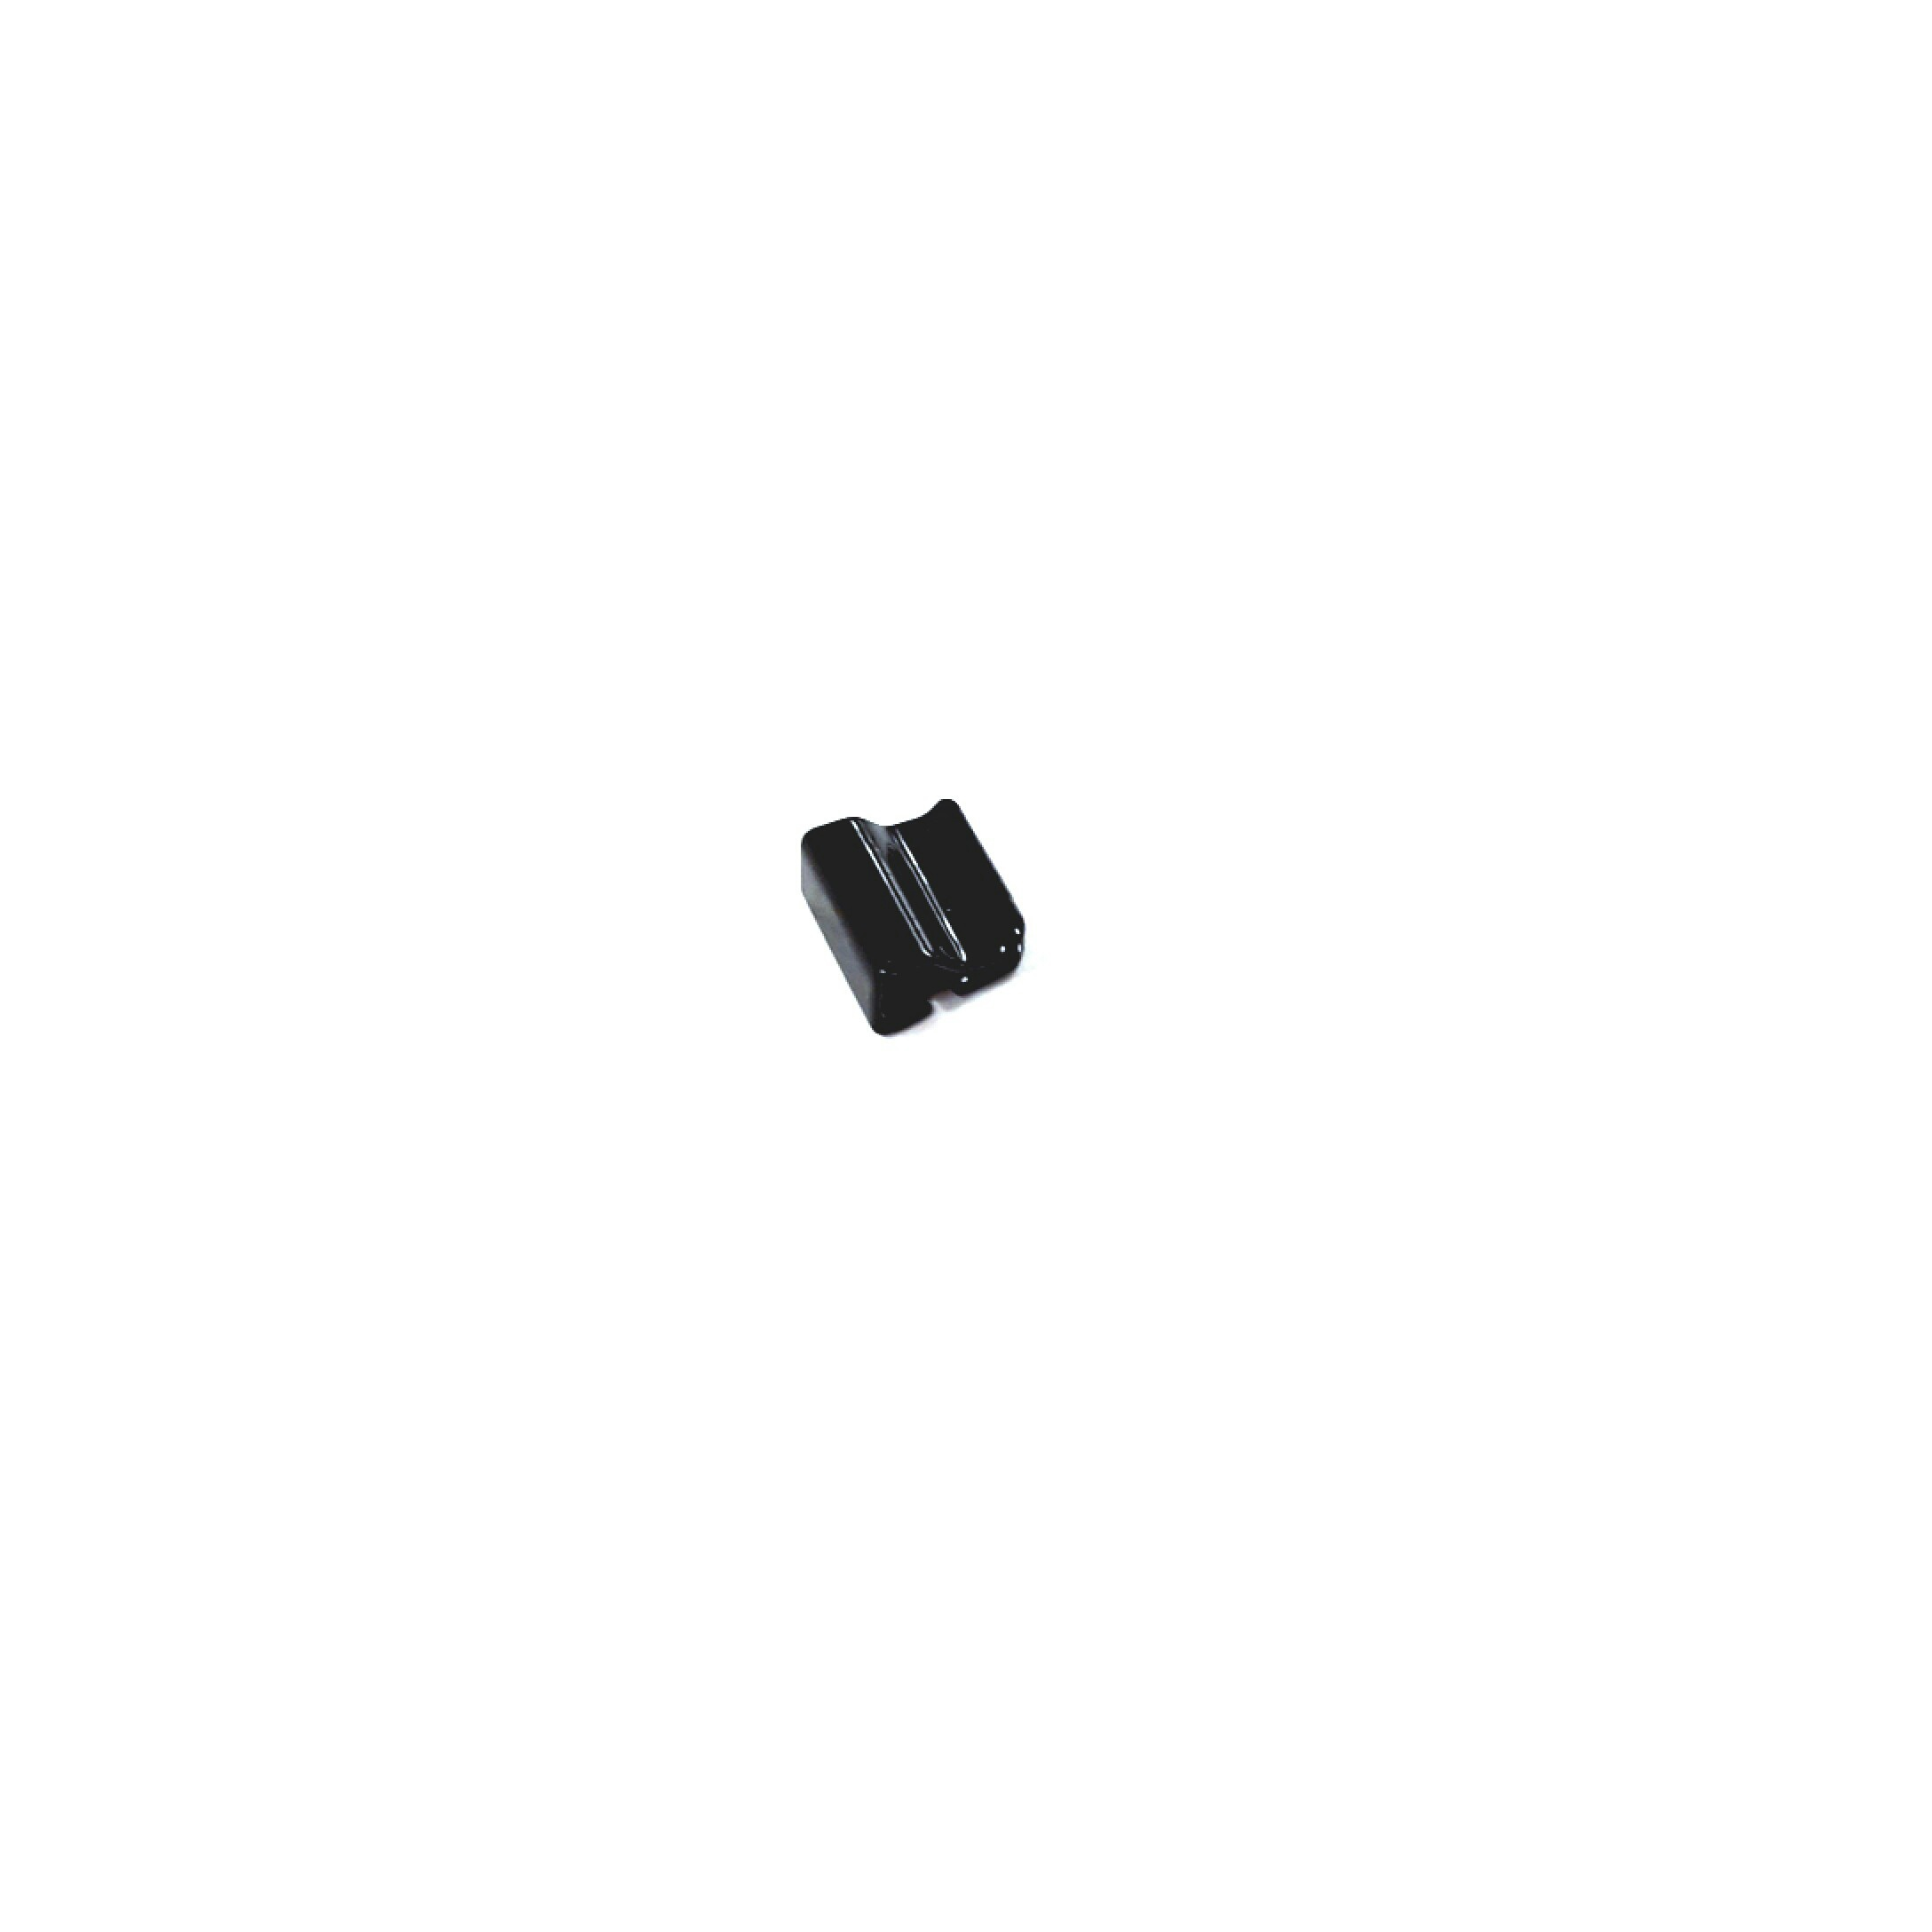 8R0853585 - Audi Spring Clip To Be Used For Item: